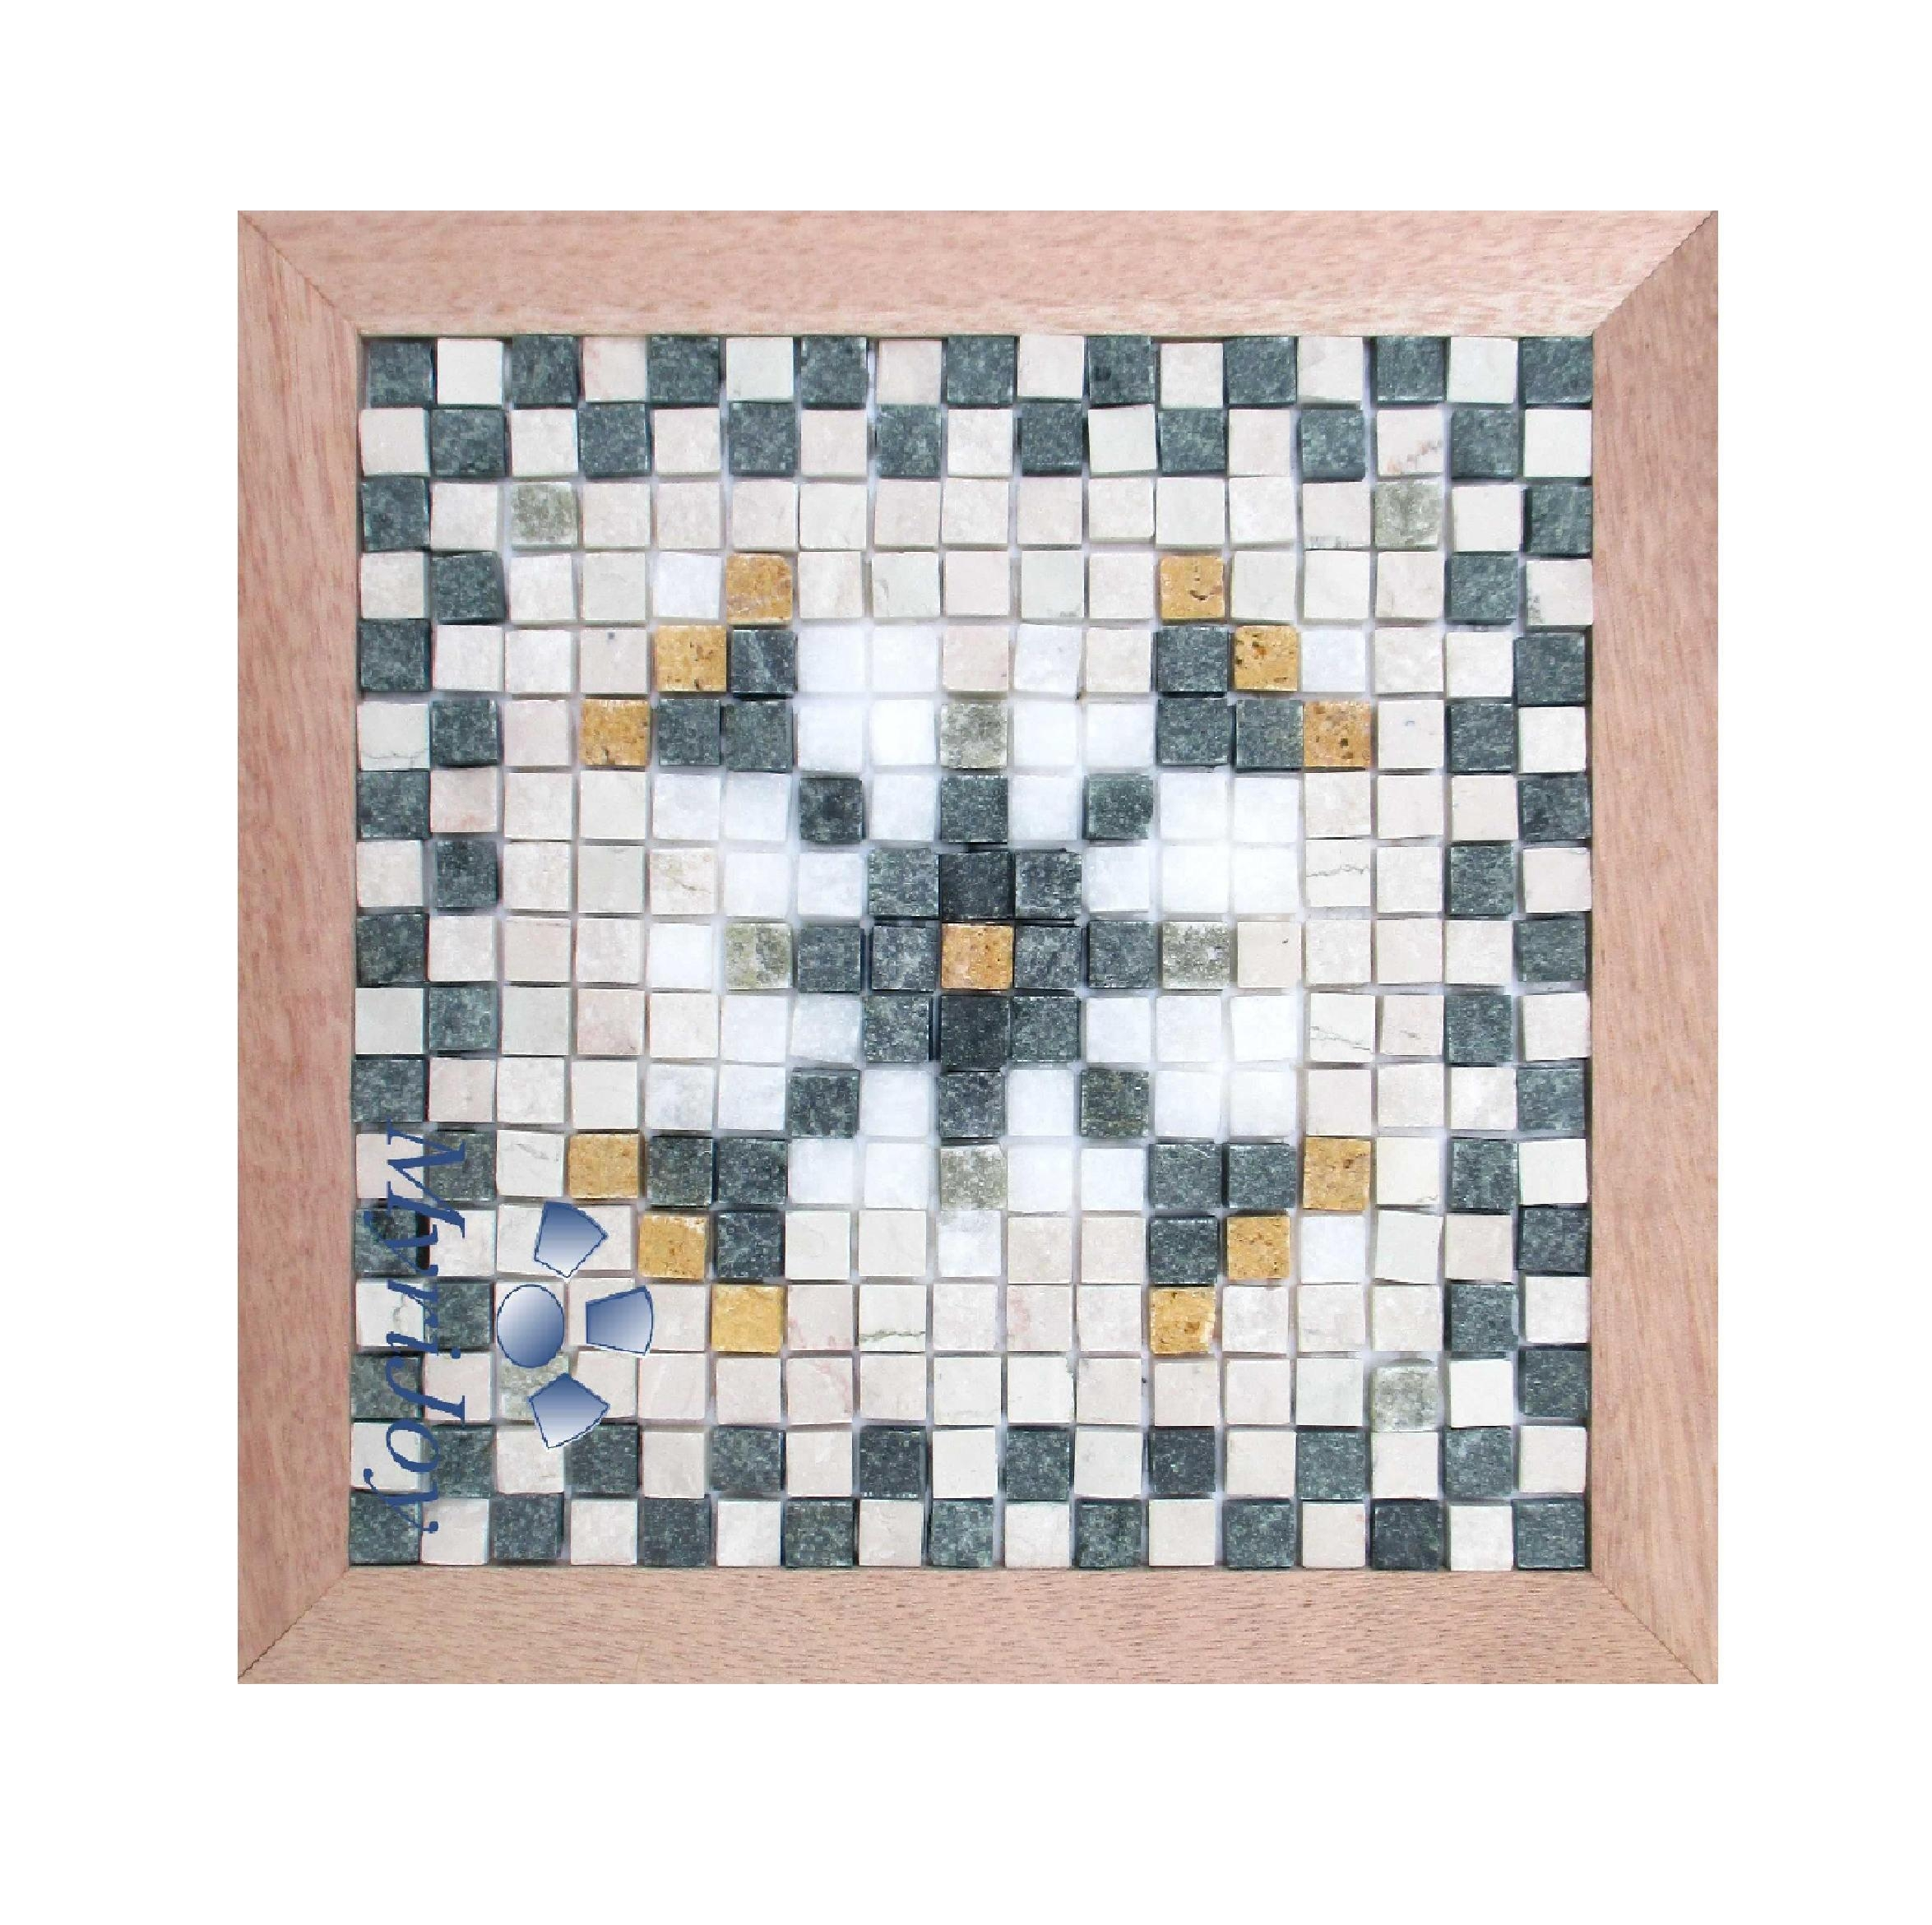 Diy Mosaic Craft Kit For Adults: Four Seasons Summer – Mosaic Tile With Regard To Mosaic Art Kits For Adults (View 13 of 20)